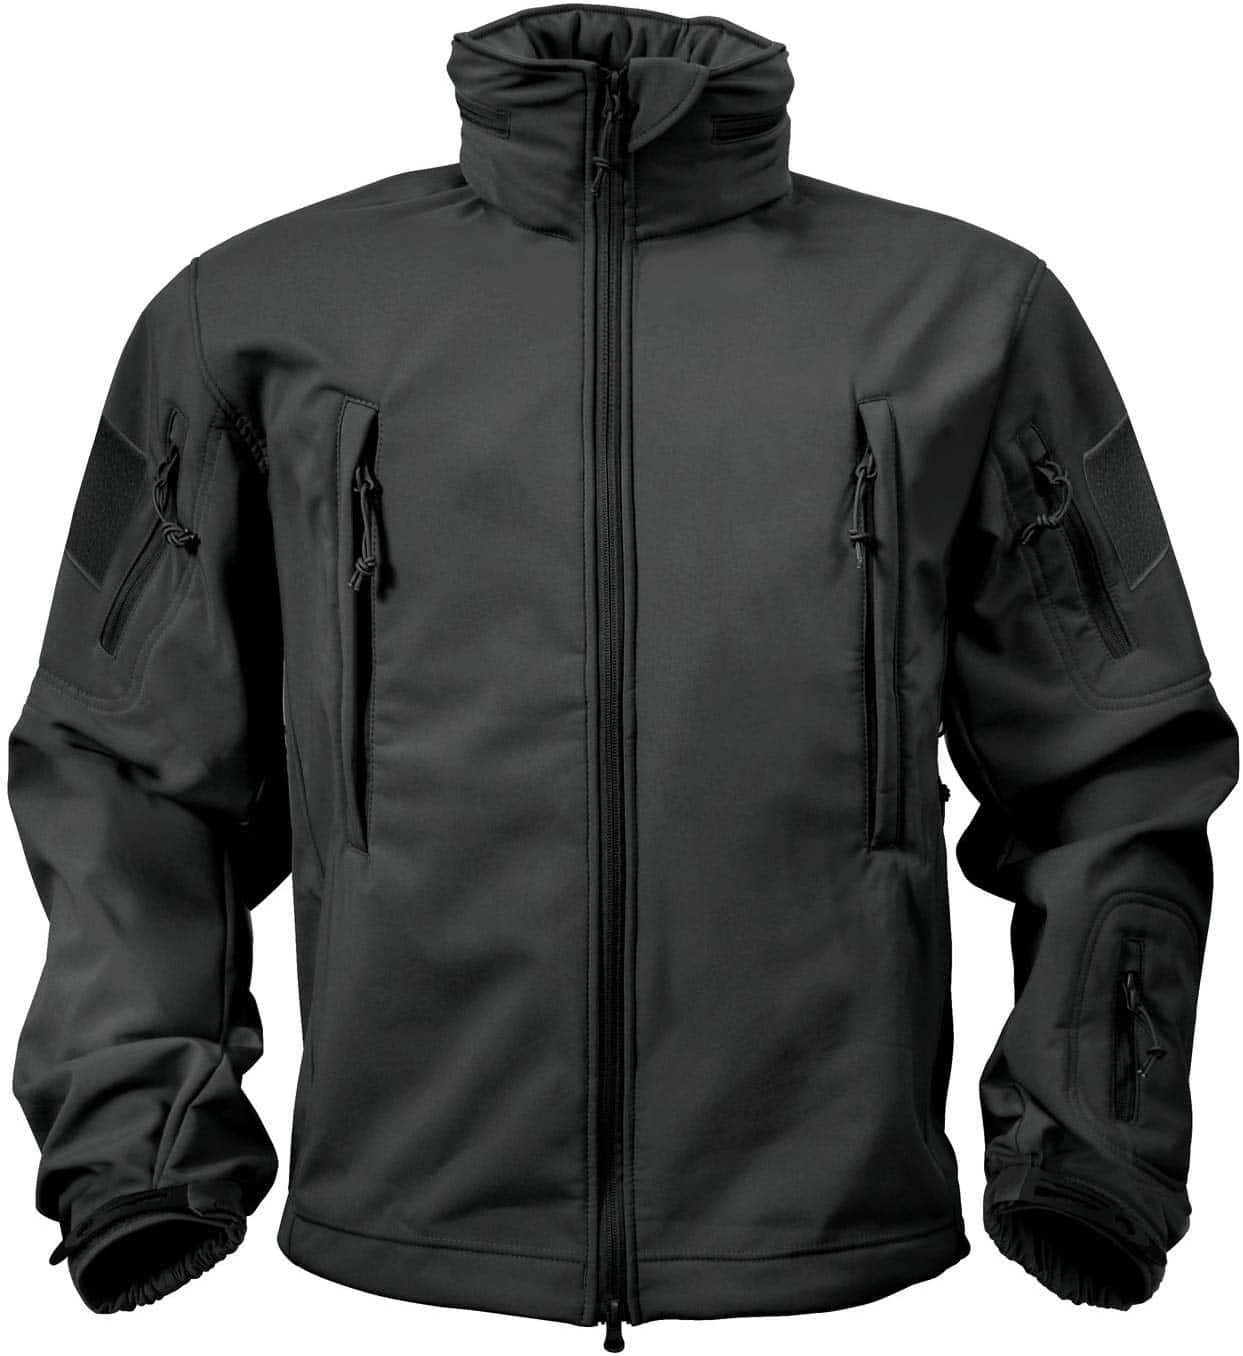 Rothco Special Ops Tactical Soft Shell Jacket